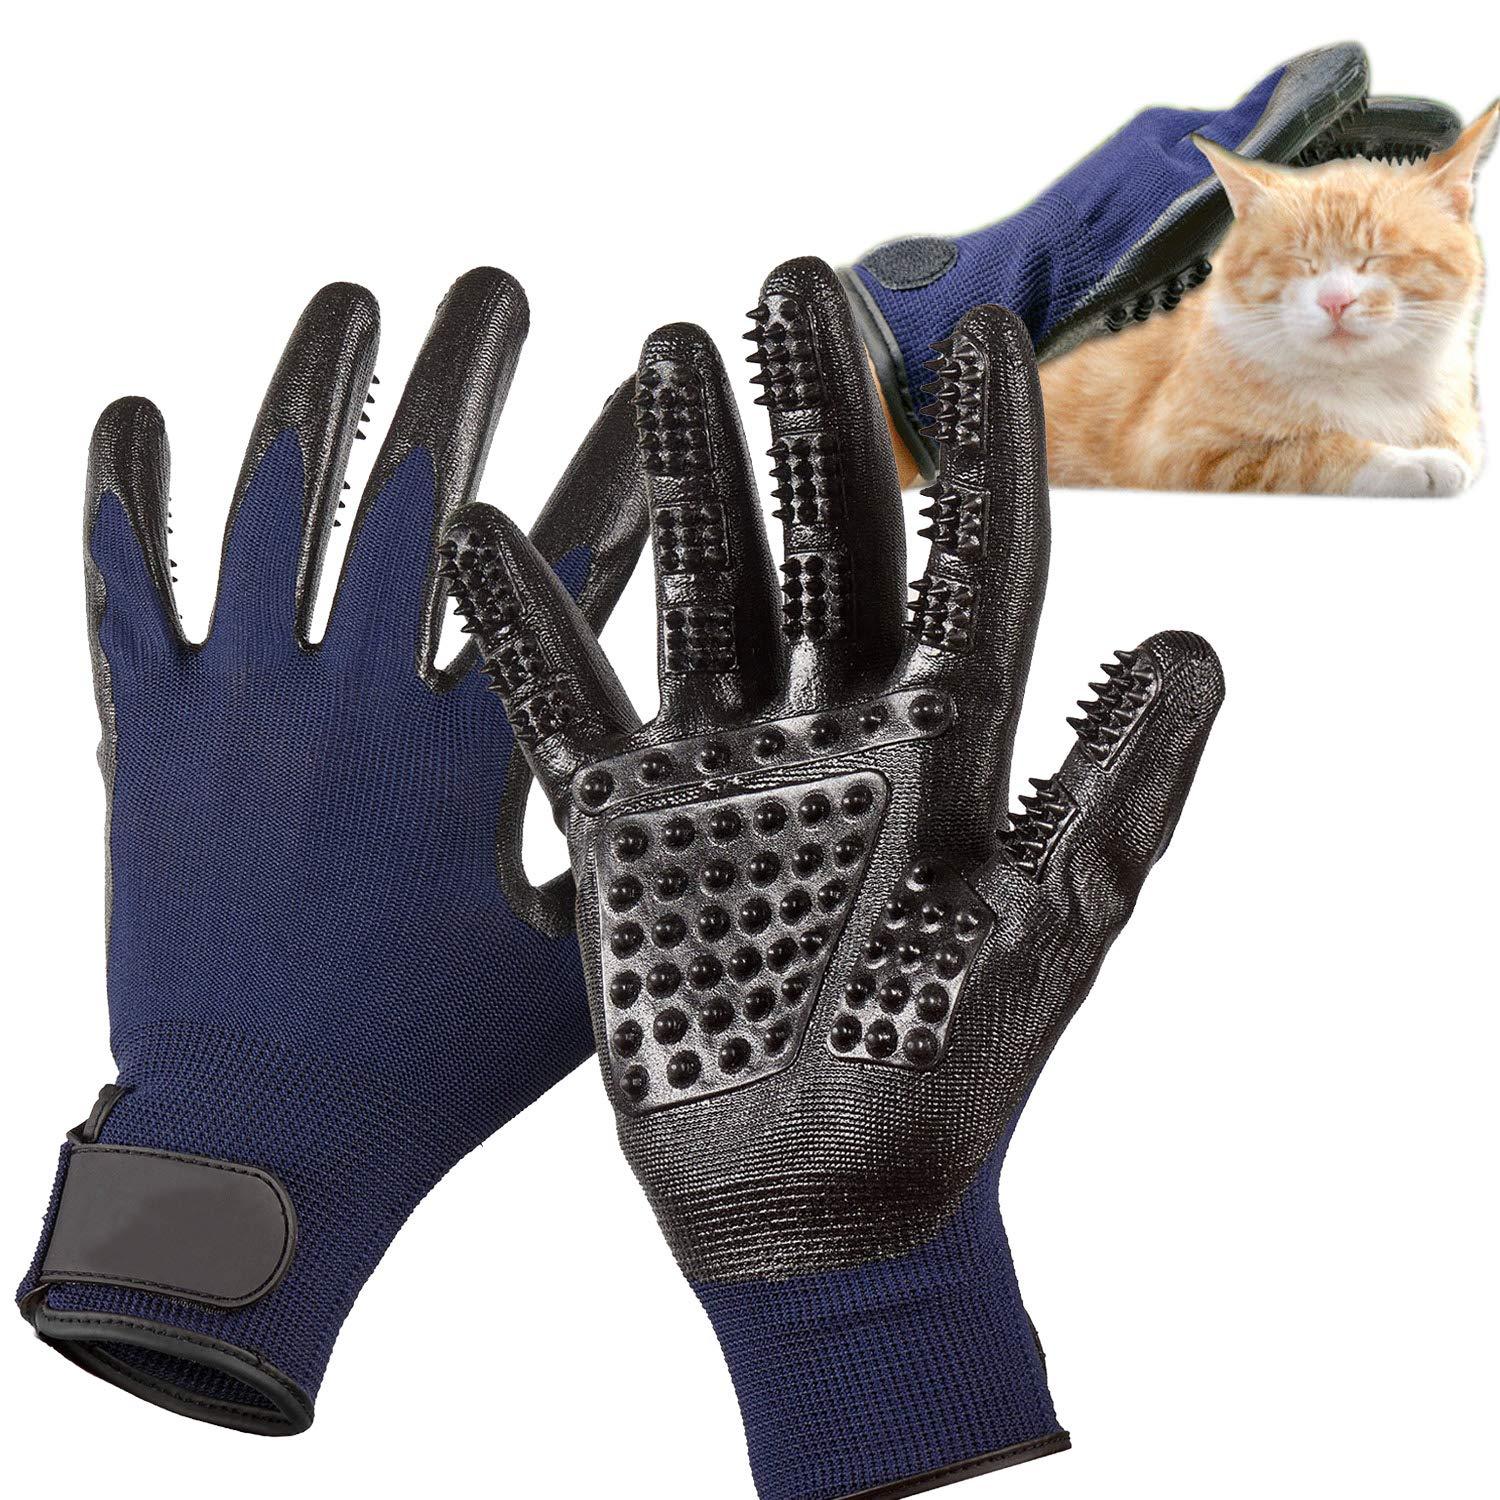 MMTX Pet Massage Gloves - 1 Pair Rubber Deshedding Brush Glove Pets Hair Remover Mitts Pet Bath Grooming Massage Tool for Cats and Dogs with Long & Short Fur